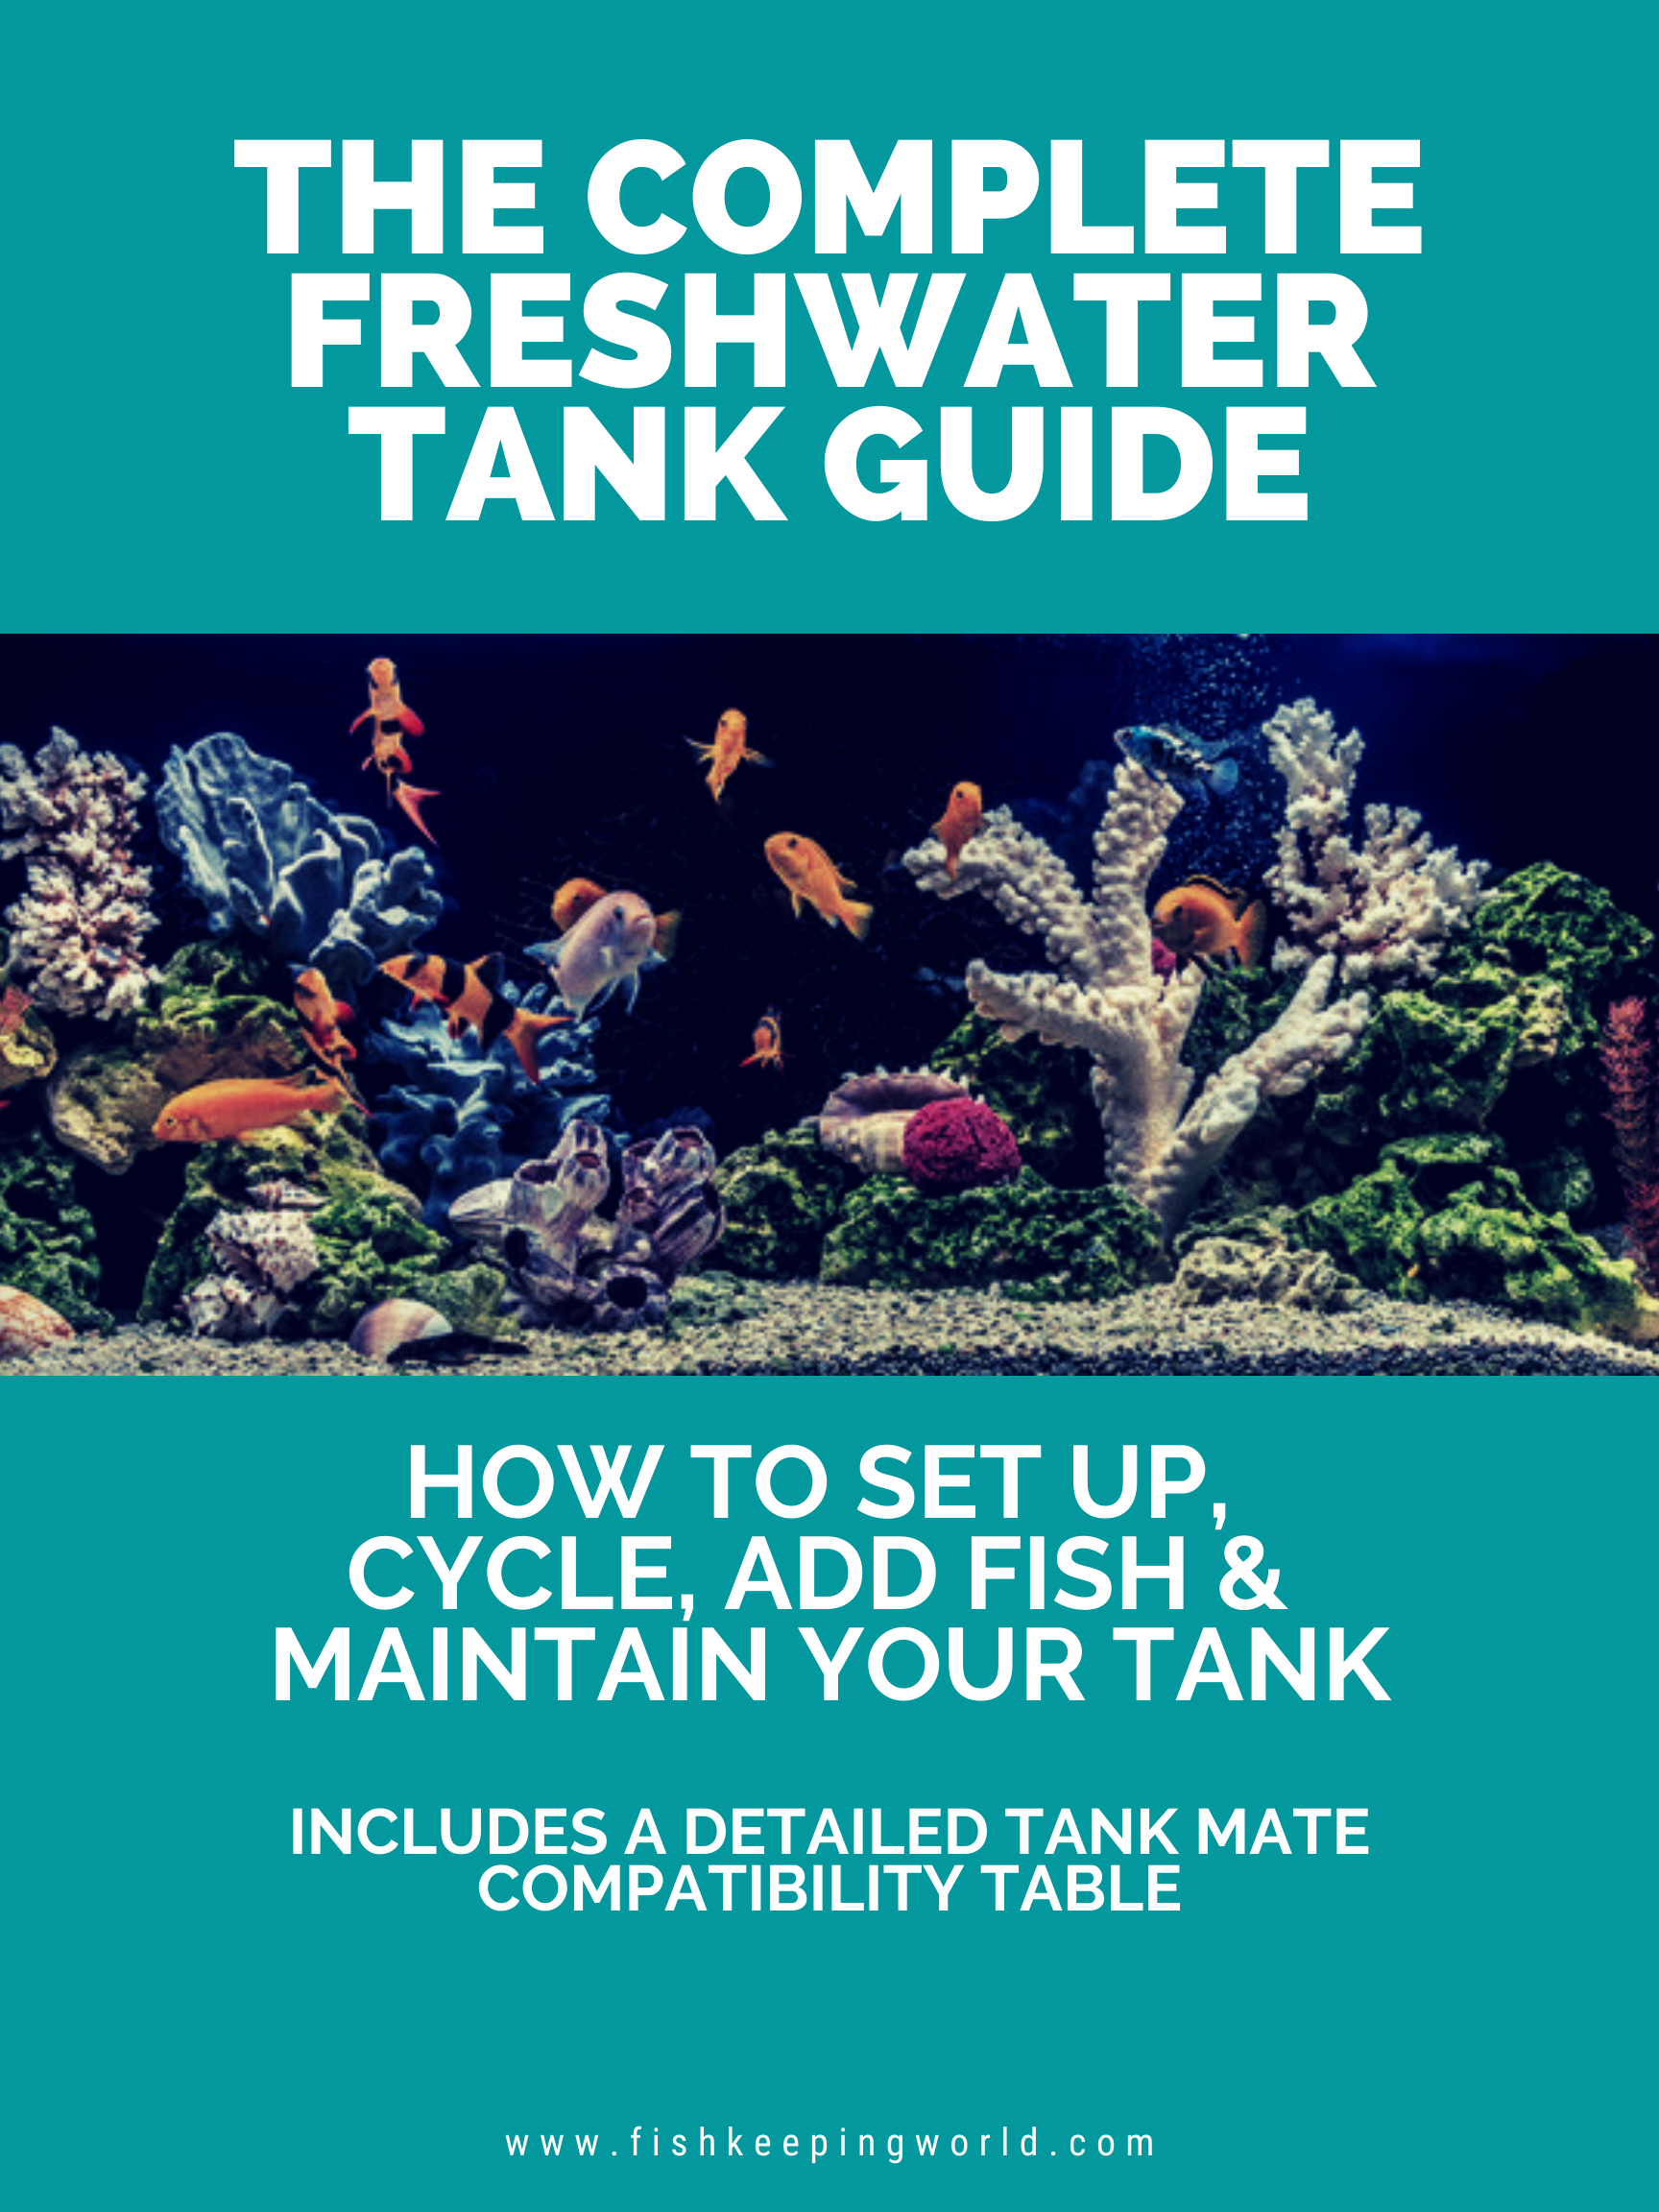 The Complete Freshwater Tank Guide